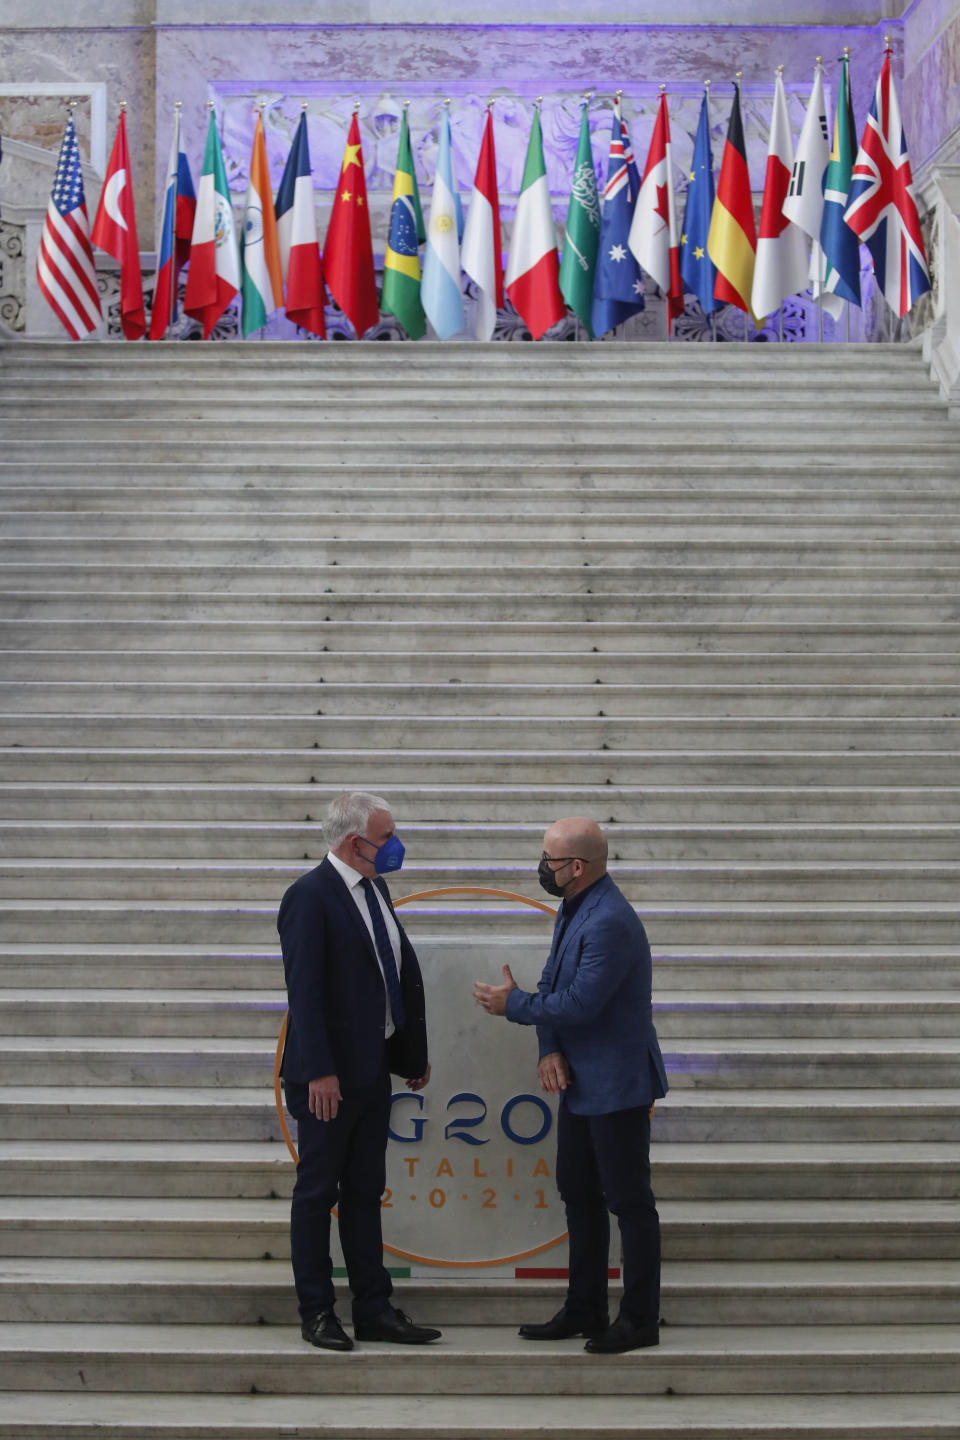 German undersecretary of environment Jochen Flasbarth, left, is welcomed by Italian Minister for Ecological Transition Roberto Cingolani as he arrives at Palazzo Reale in Naples, Italy, Thursday, July 22, 2021, to take part in a G20 meeting on environment, climate and energy. (AP Photo/Salvatore Laporta)